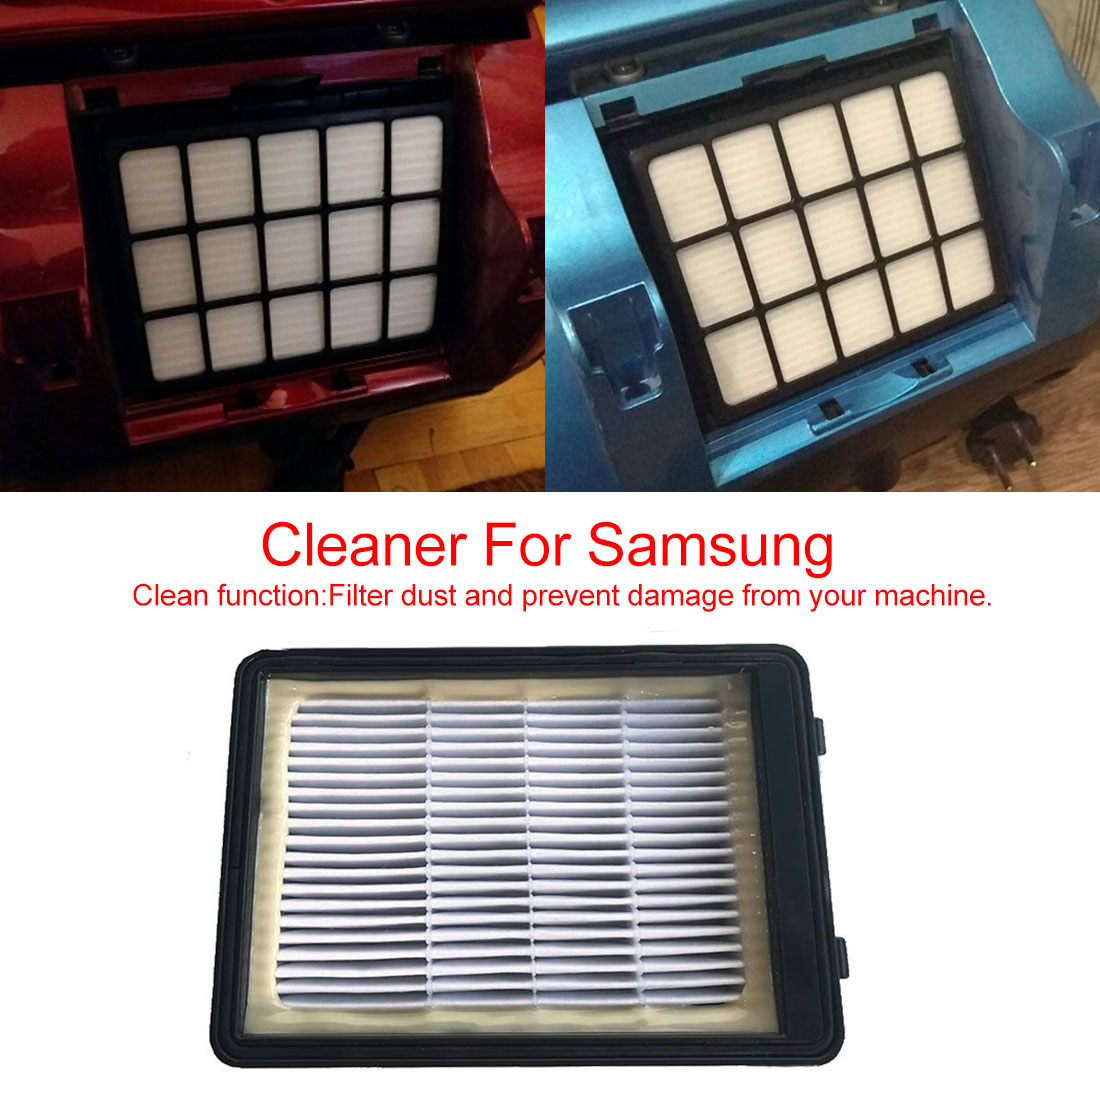 2019 NEW Dust Filter For Vacuum Cleaner Spare Parts Cleaner Accessories Vacuum Cleaner Dust DJ97 00492A SC65 SC68